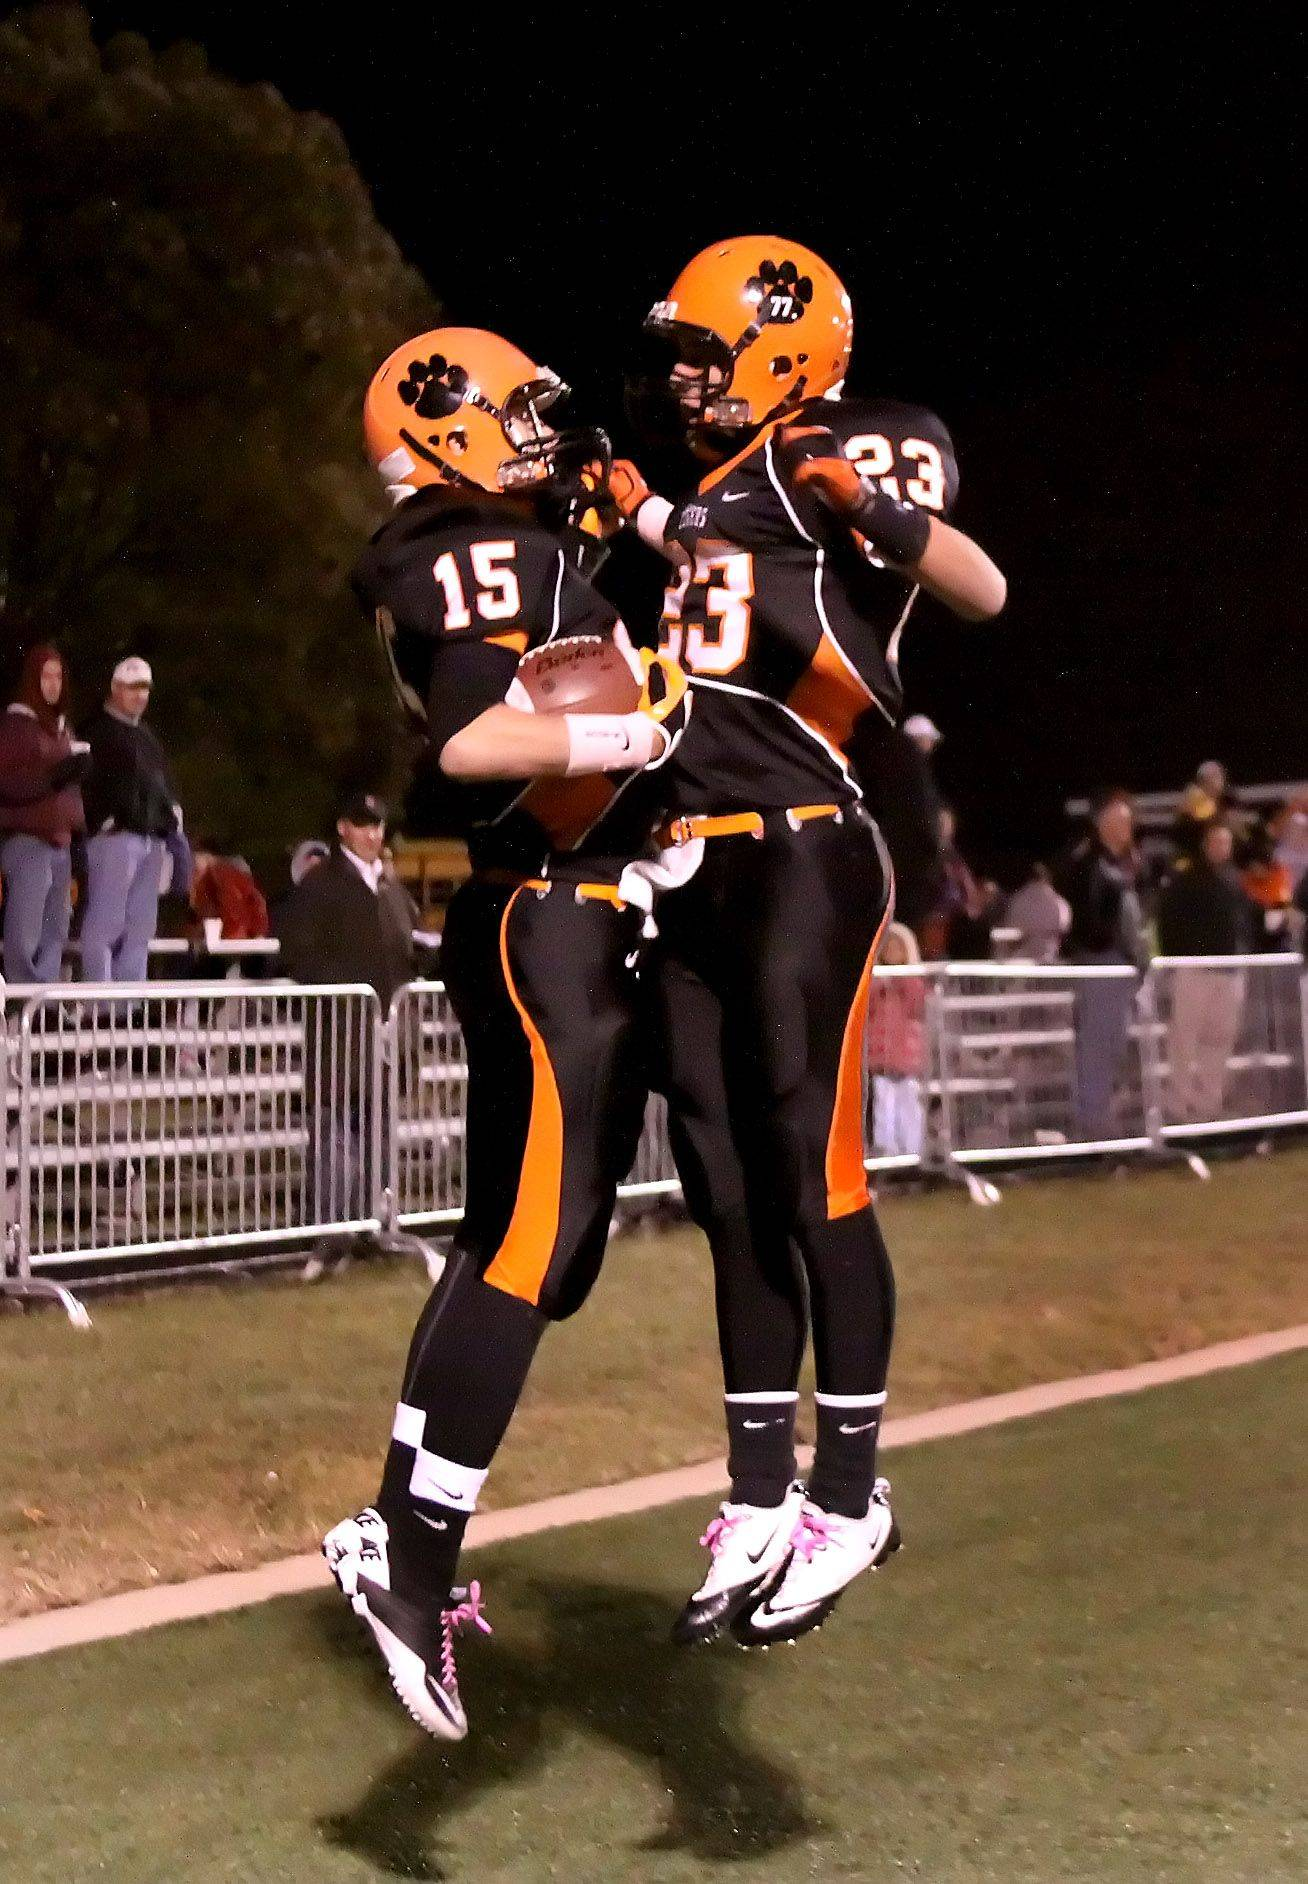 Travis Kern, right, jumps up to celebrate a touchdown by Ryan Crowe, left of Wheaton Warrenville South during their win over Benet in playoff football Friday in Wheaton.